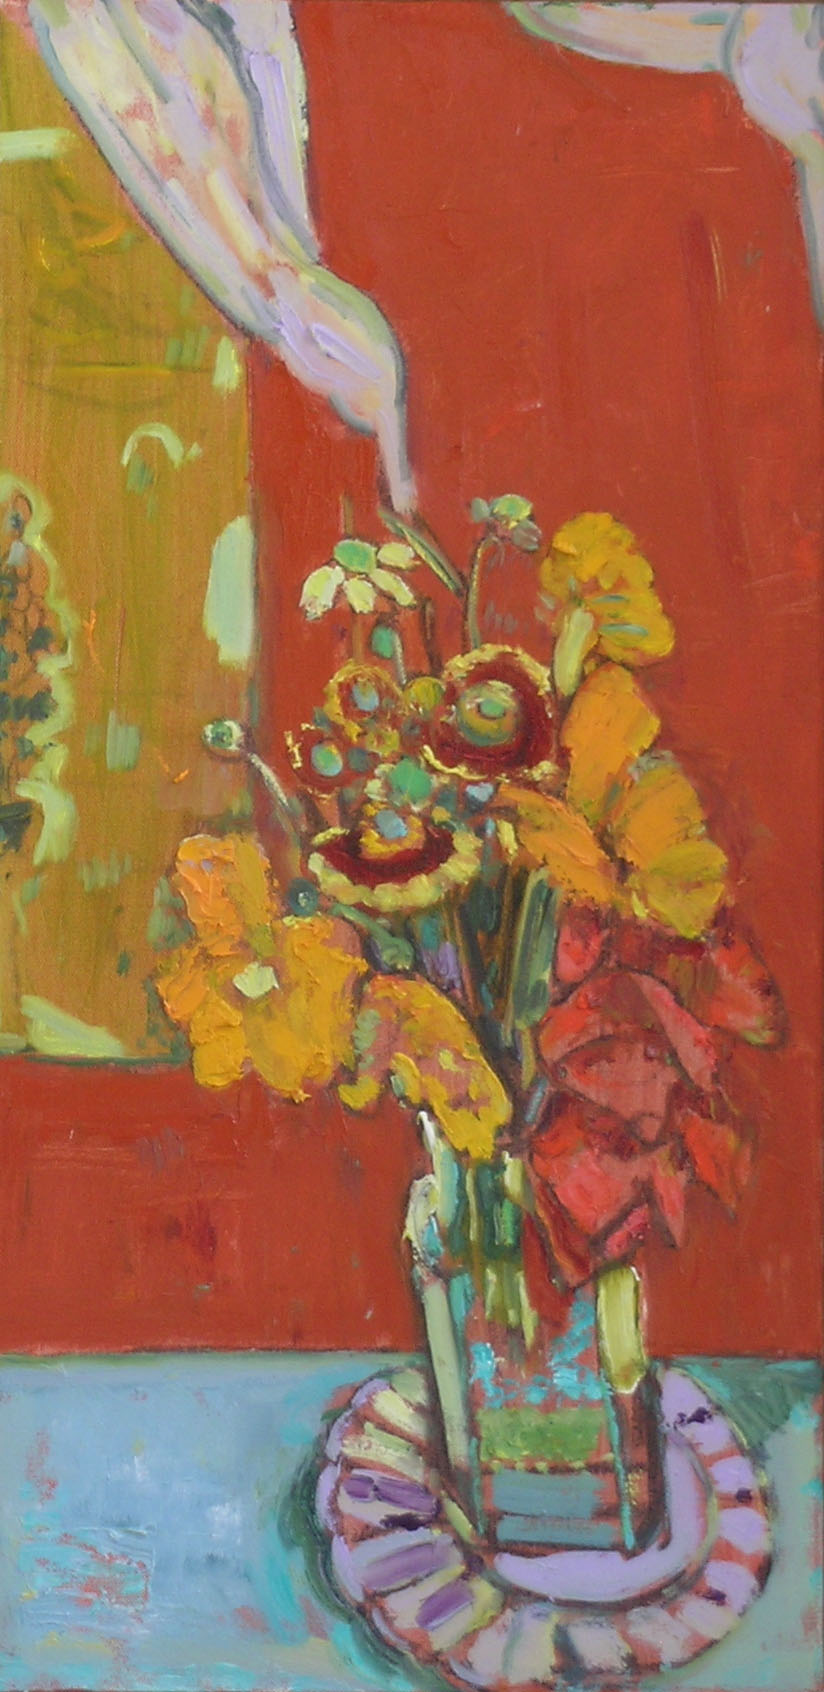 August Flowers, 2005 oil on canvas, 24 x 12 inches